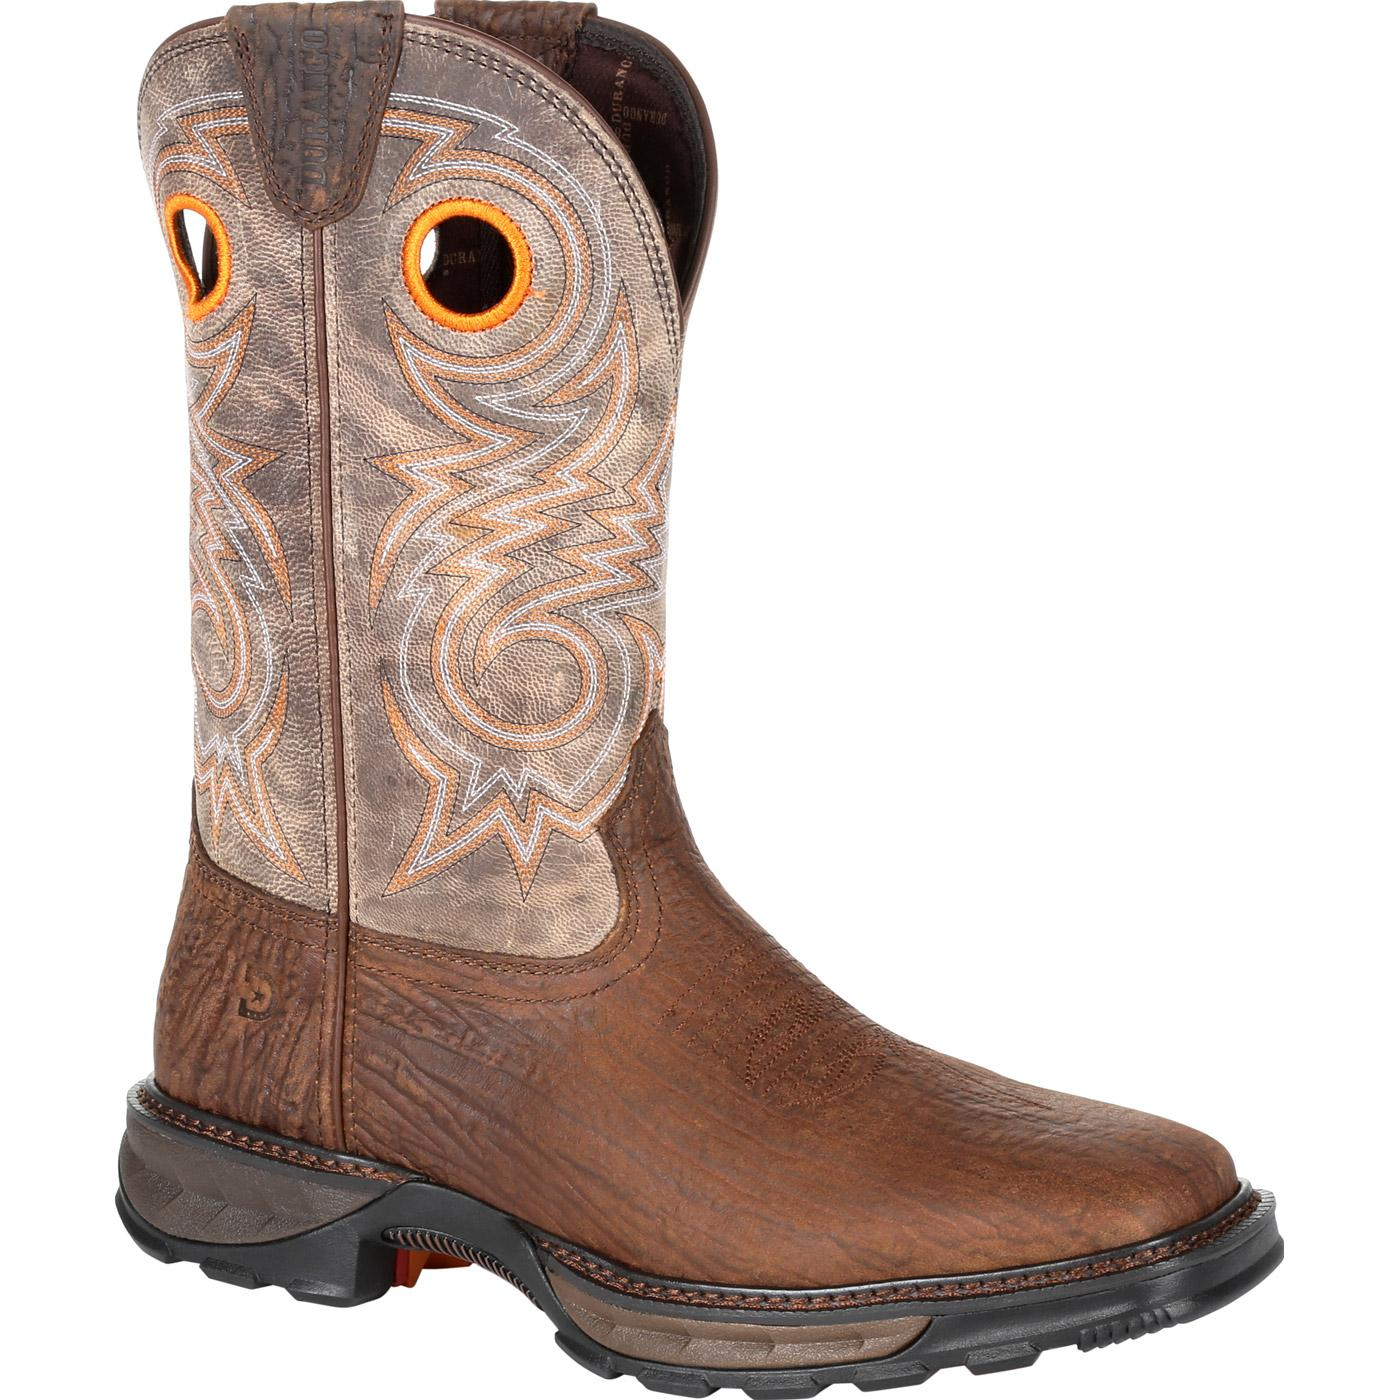 be402ef35c0 Durango Maverick XP Composite Toe Western Work Boot